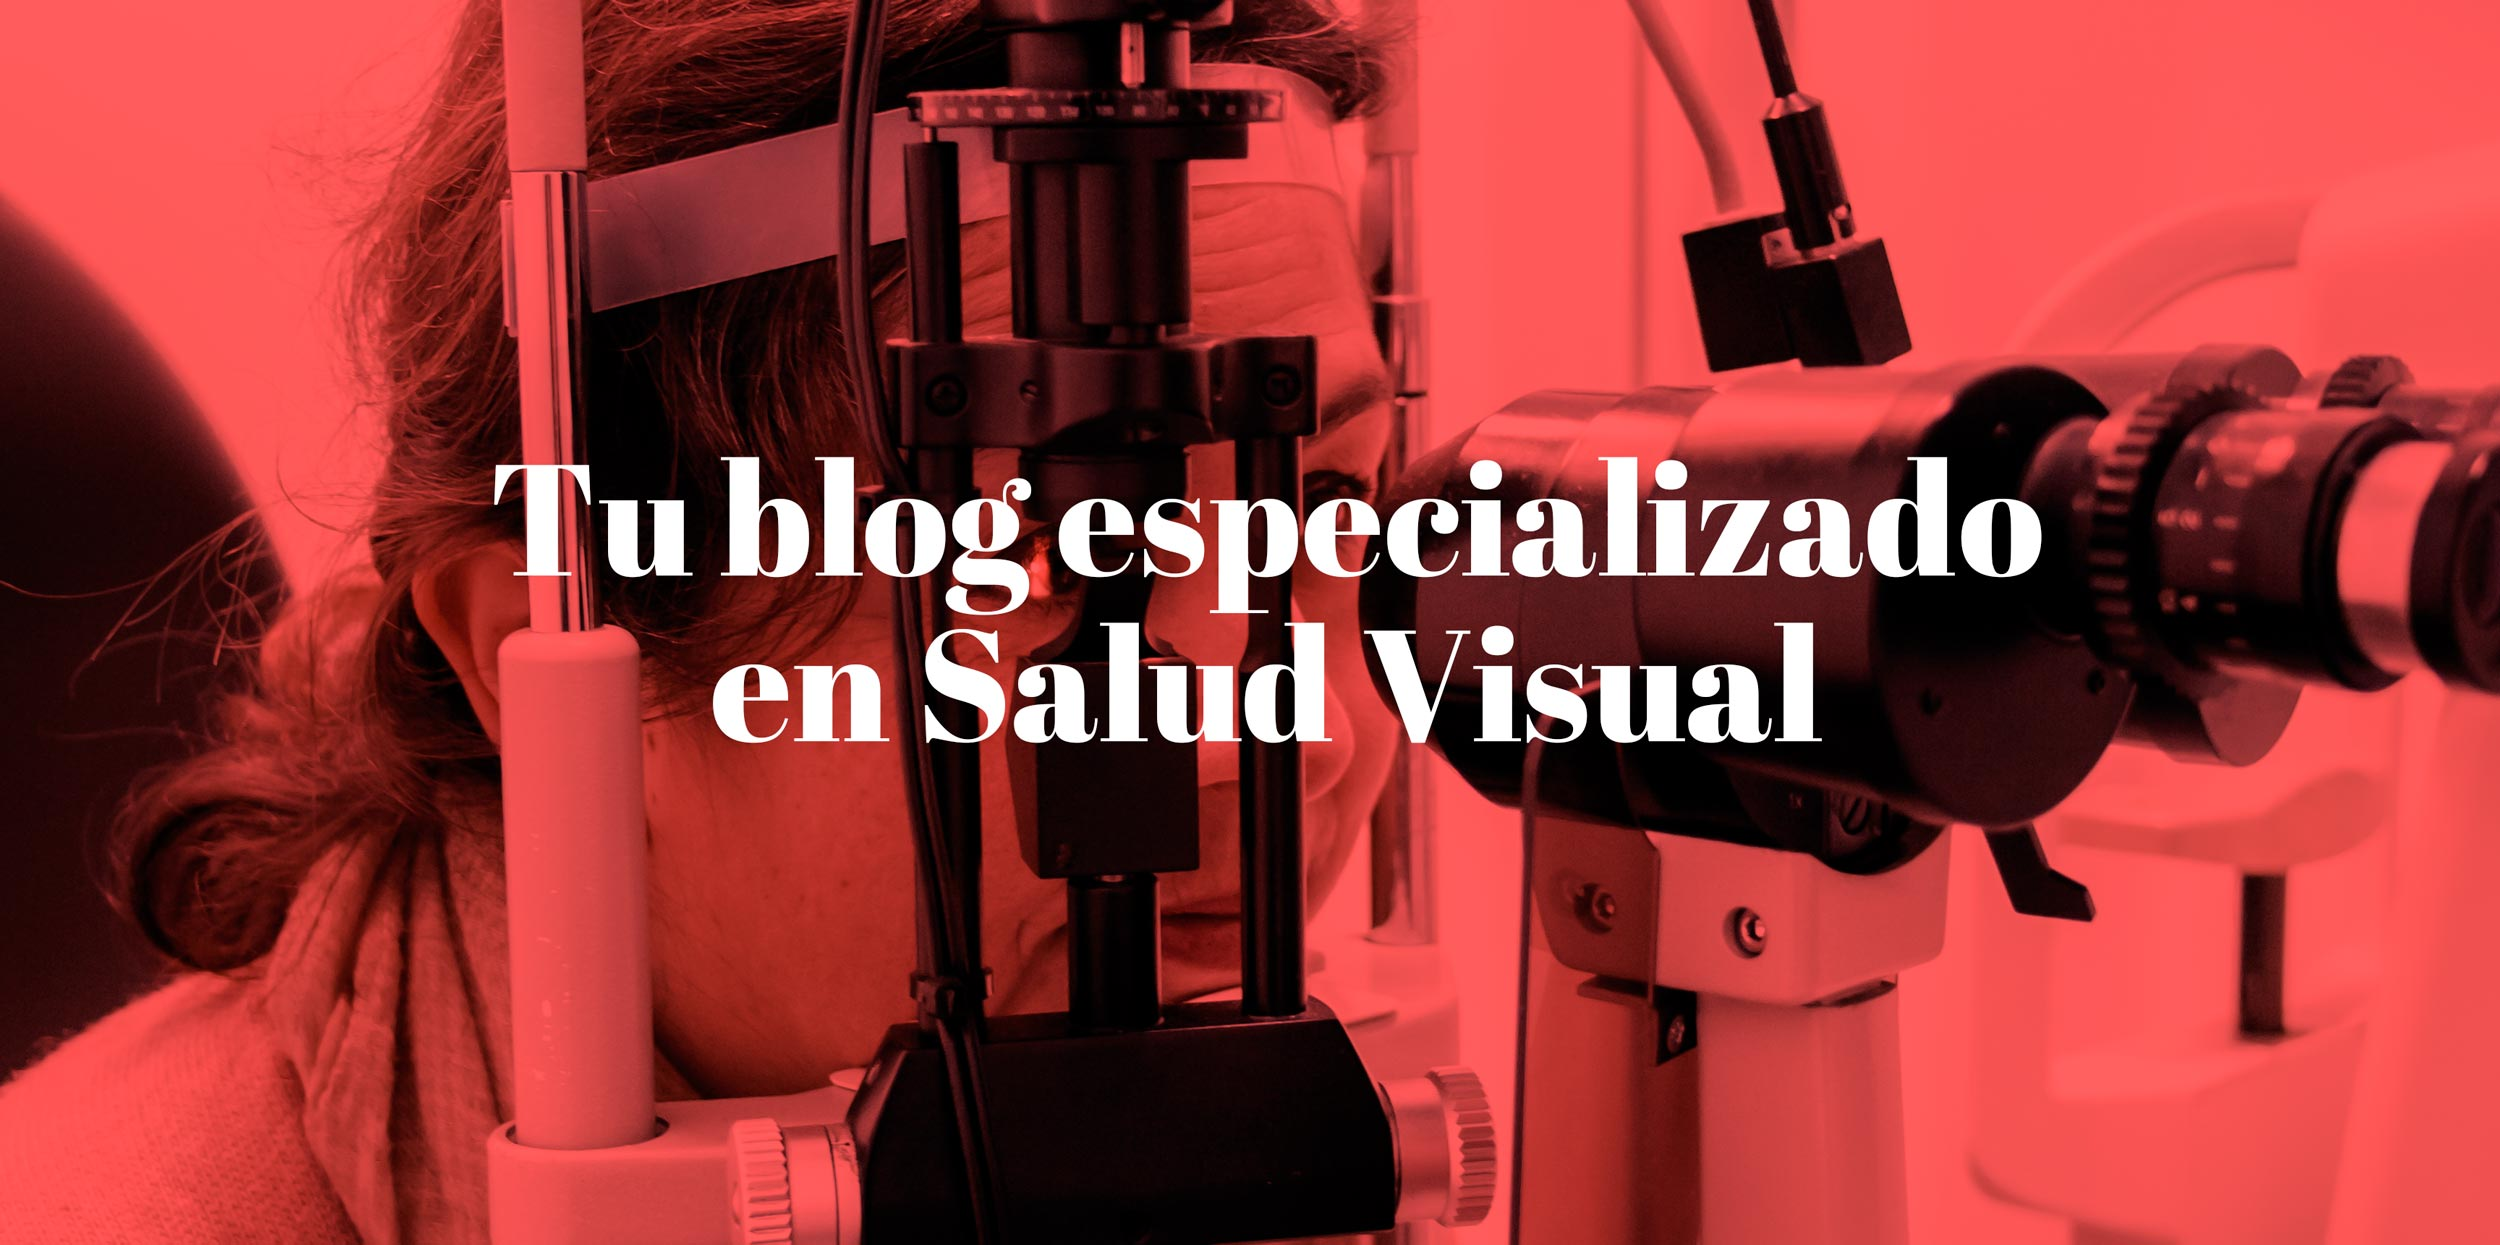 Tu blog especializado en Salud Visual